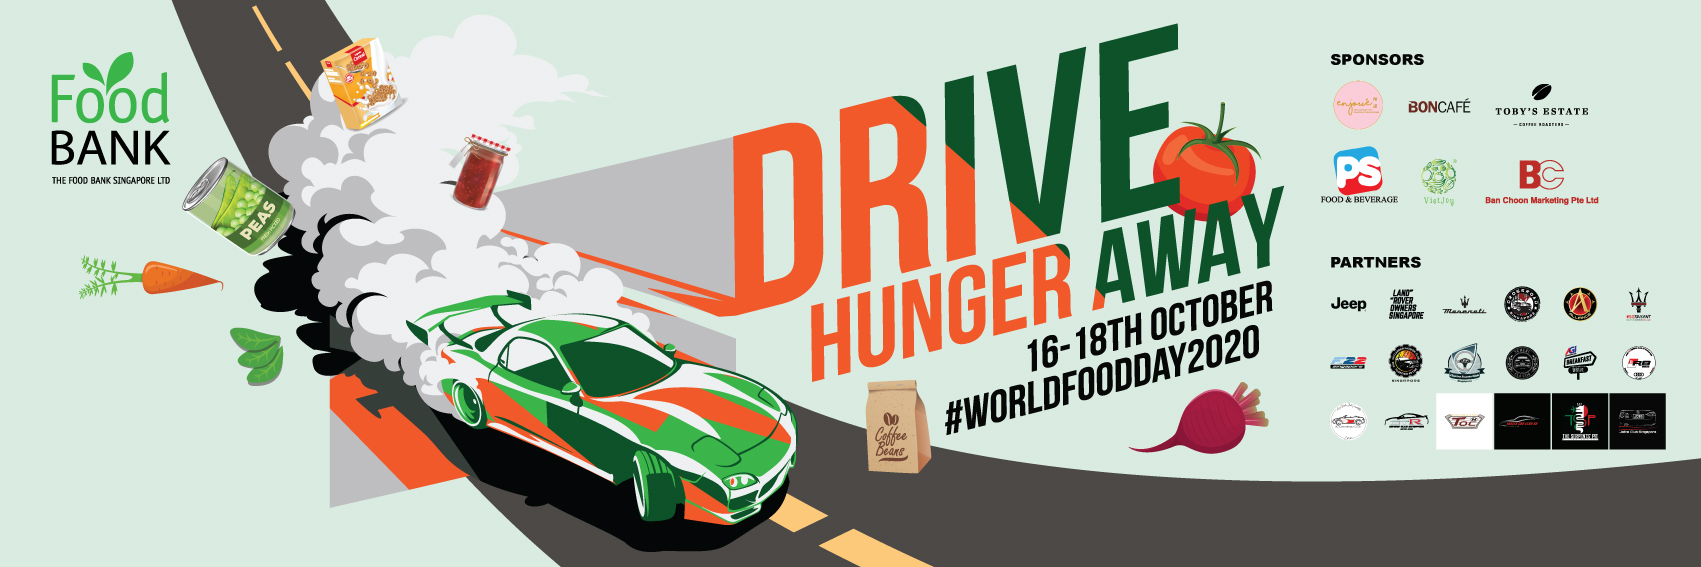 DRIVE AWAY HUNGER: 18 car clubs rallying for World Food Day 2020